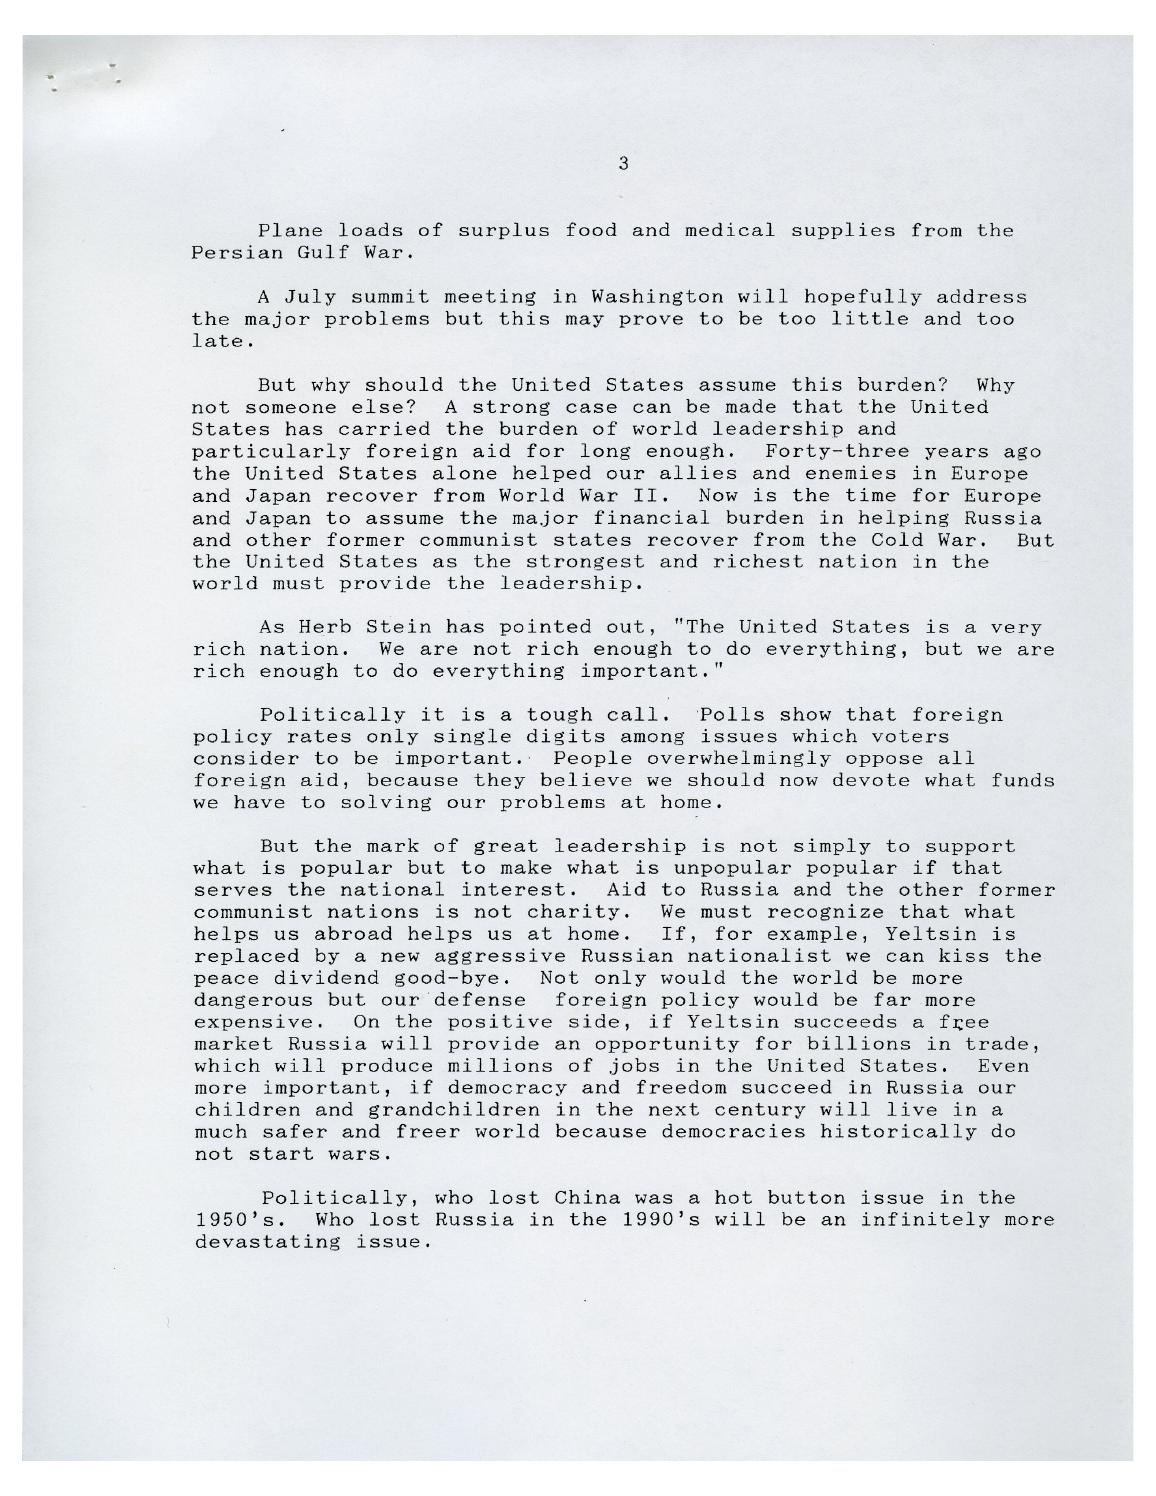 essays on the cold war page essay on the cold war korean war essay  page essay on the cold war 3 page essay on the cold war